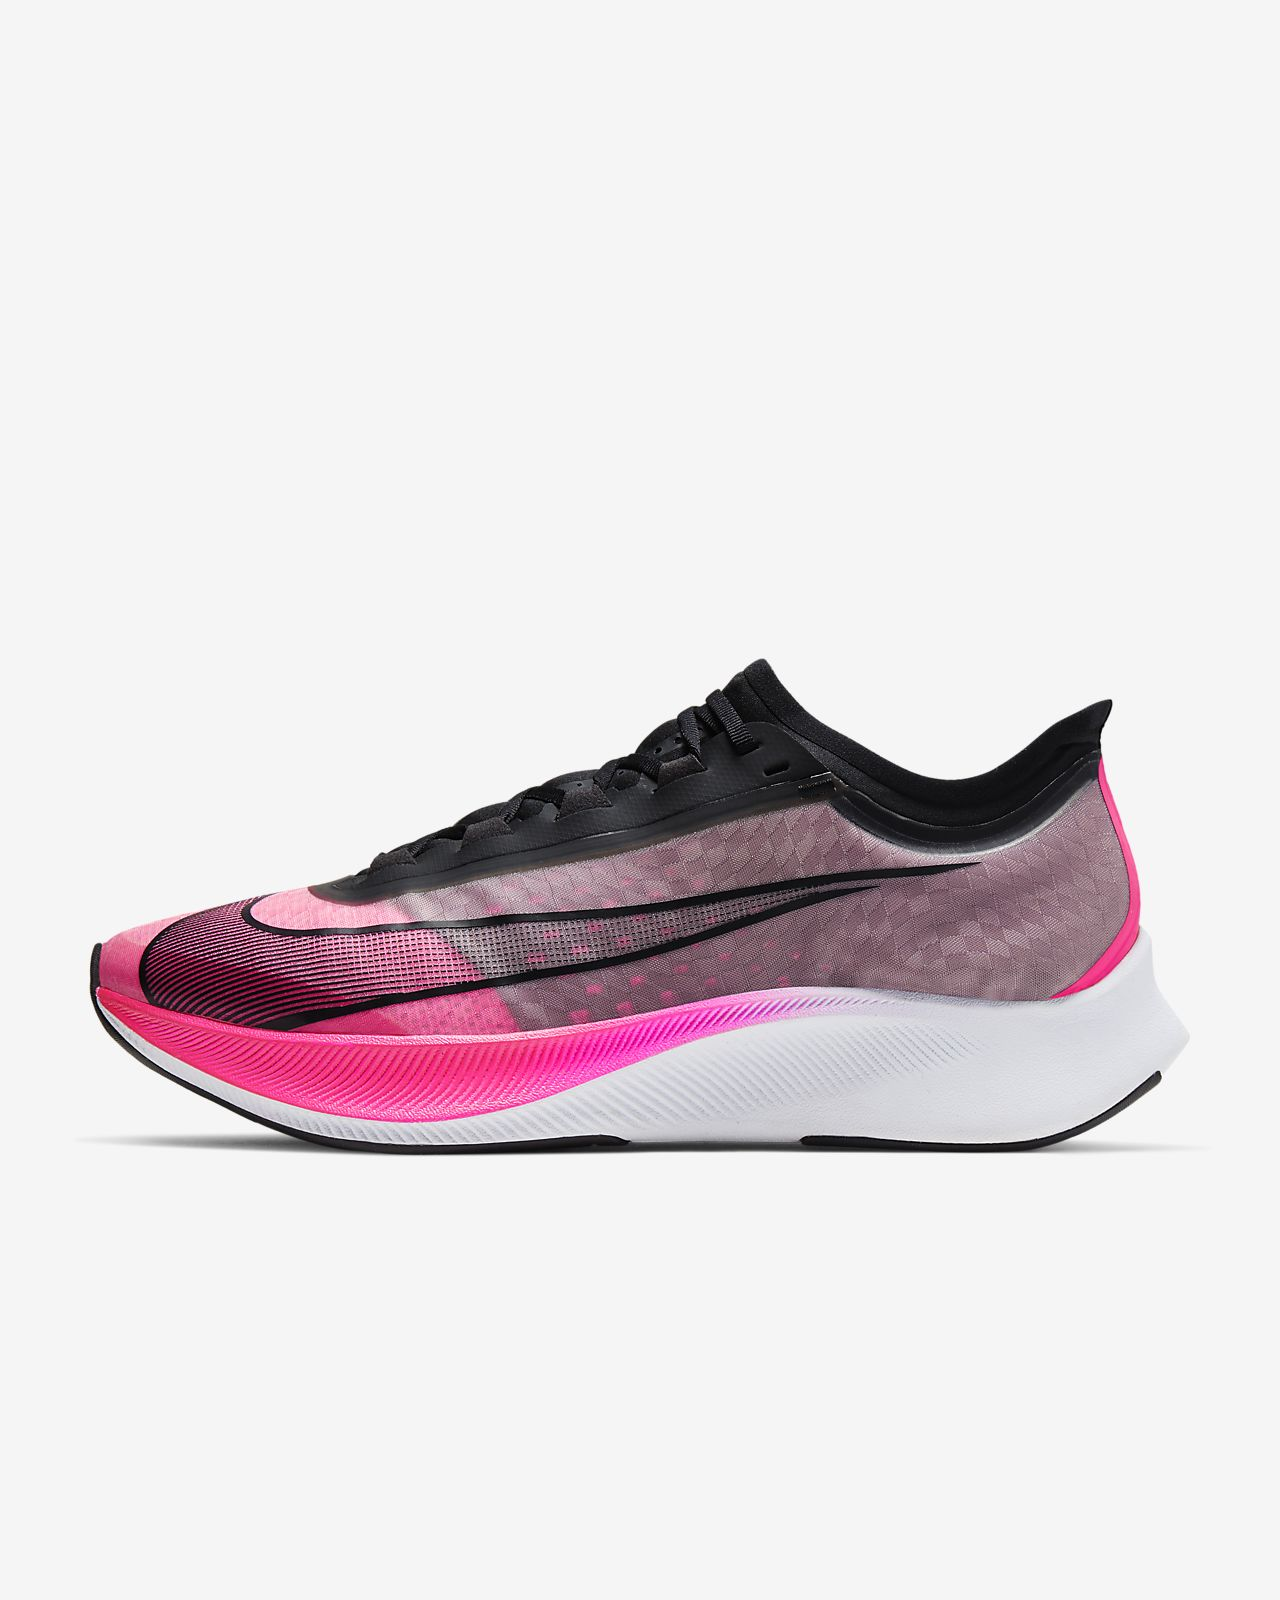 reputable site 70f3a 162d0 Nike Zoom Fly 3 Men's Running Shoe